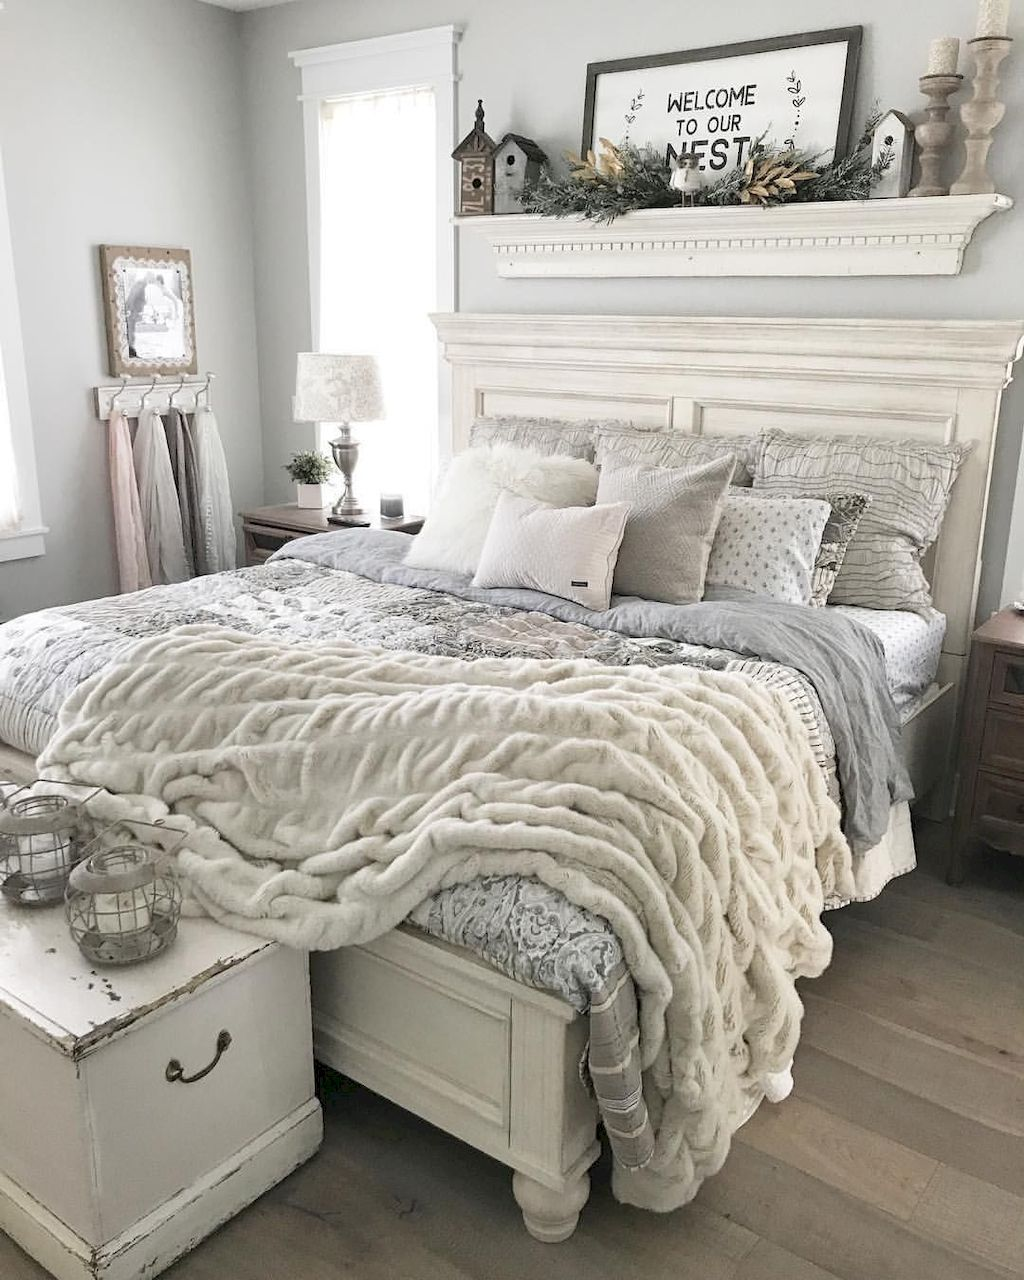 55 Small Master Bedroom Design Ideas is part of Farmhouse master bedroom - There is no reason at all that a small bedroom   even a really tiny bedroom   can't be every bit as gorgeous, relaxing, and just plain full of personality as a much larger space  If you lack surface space… Continue Reading →